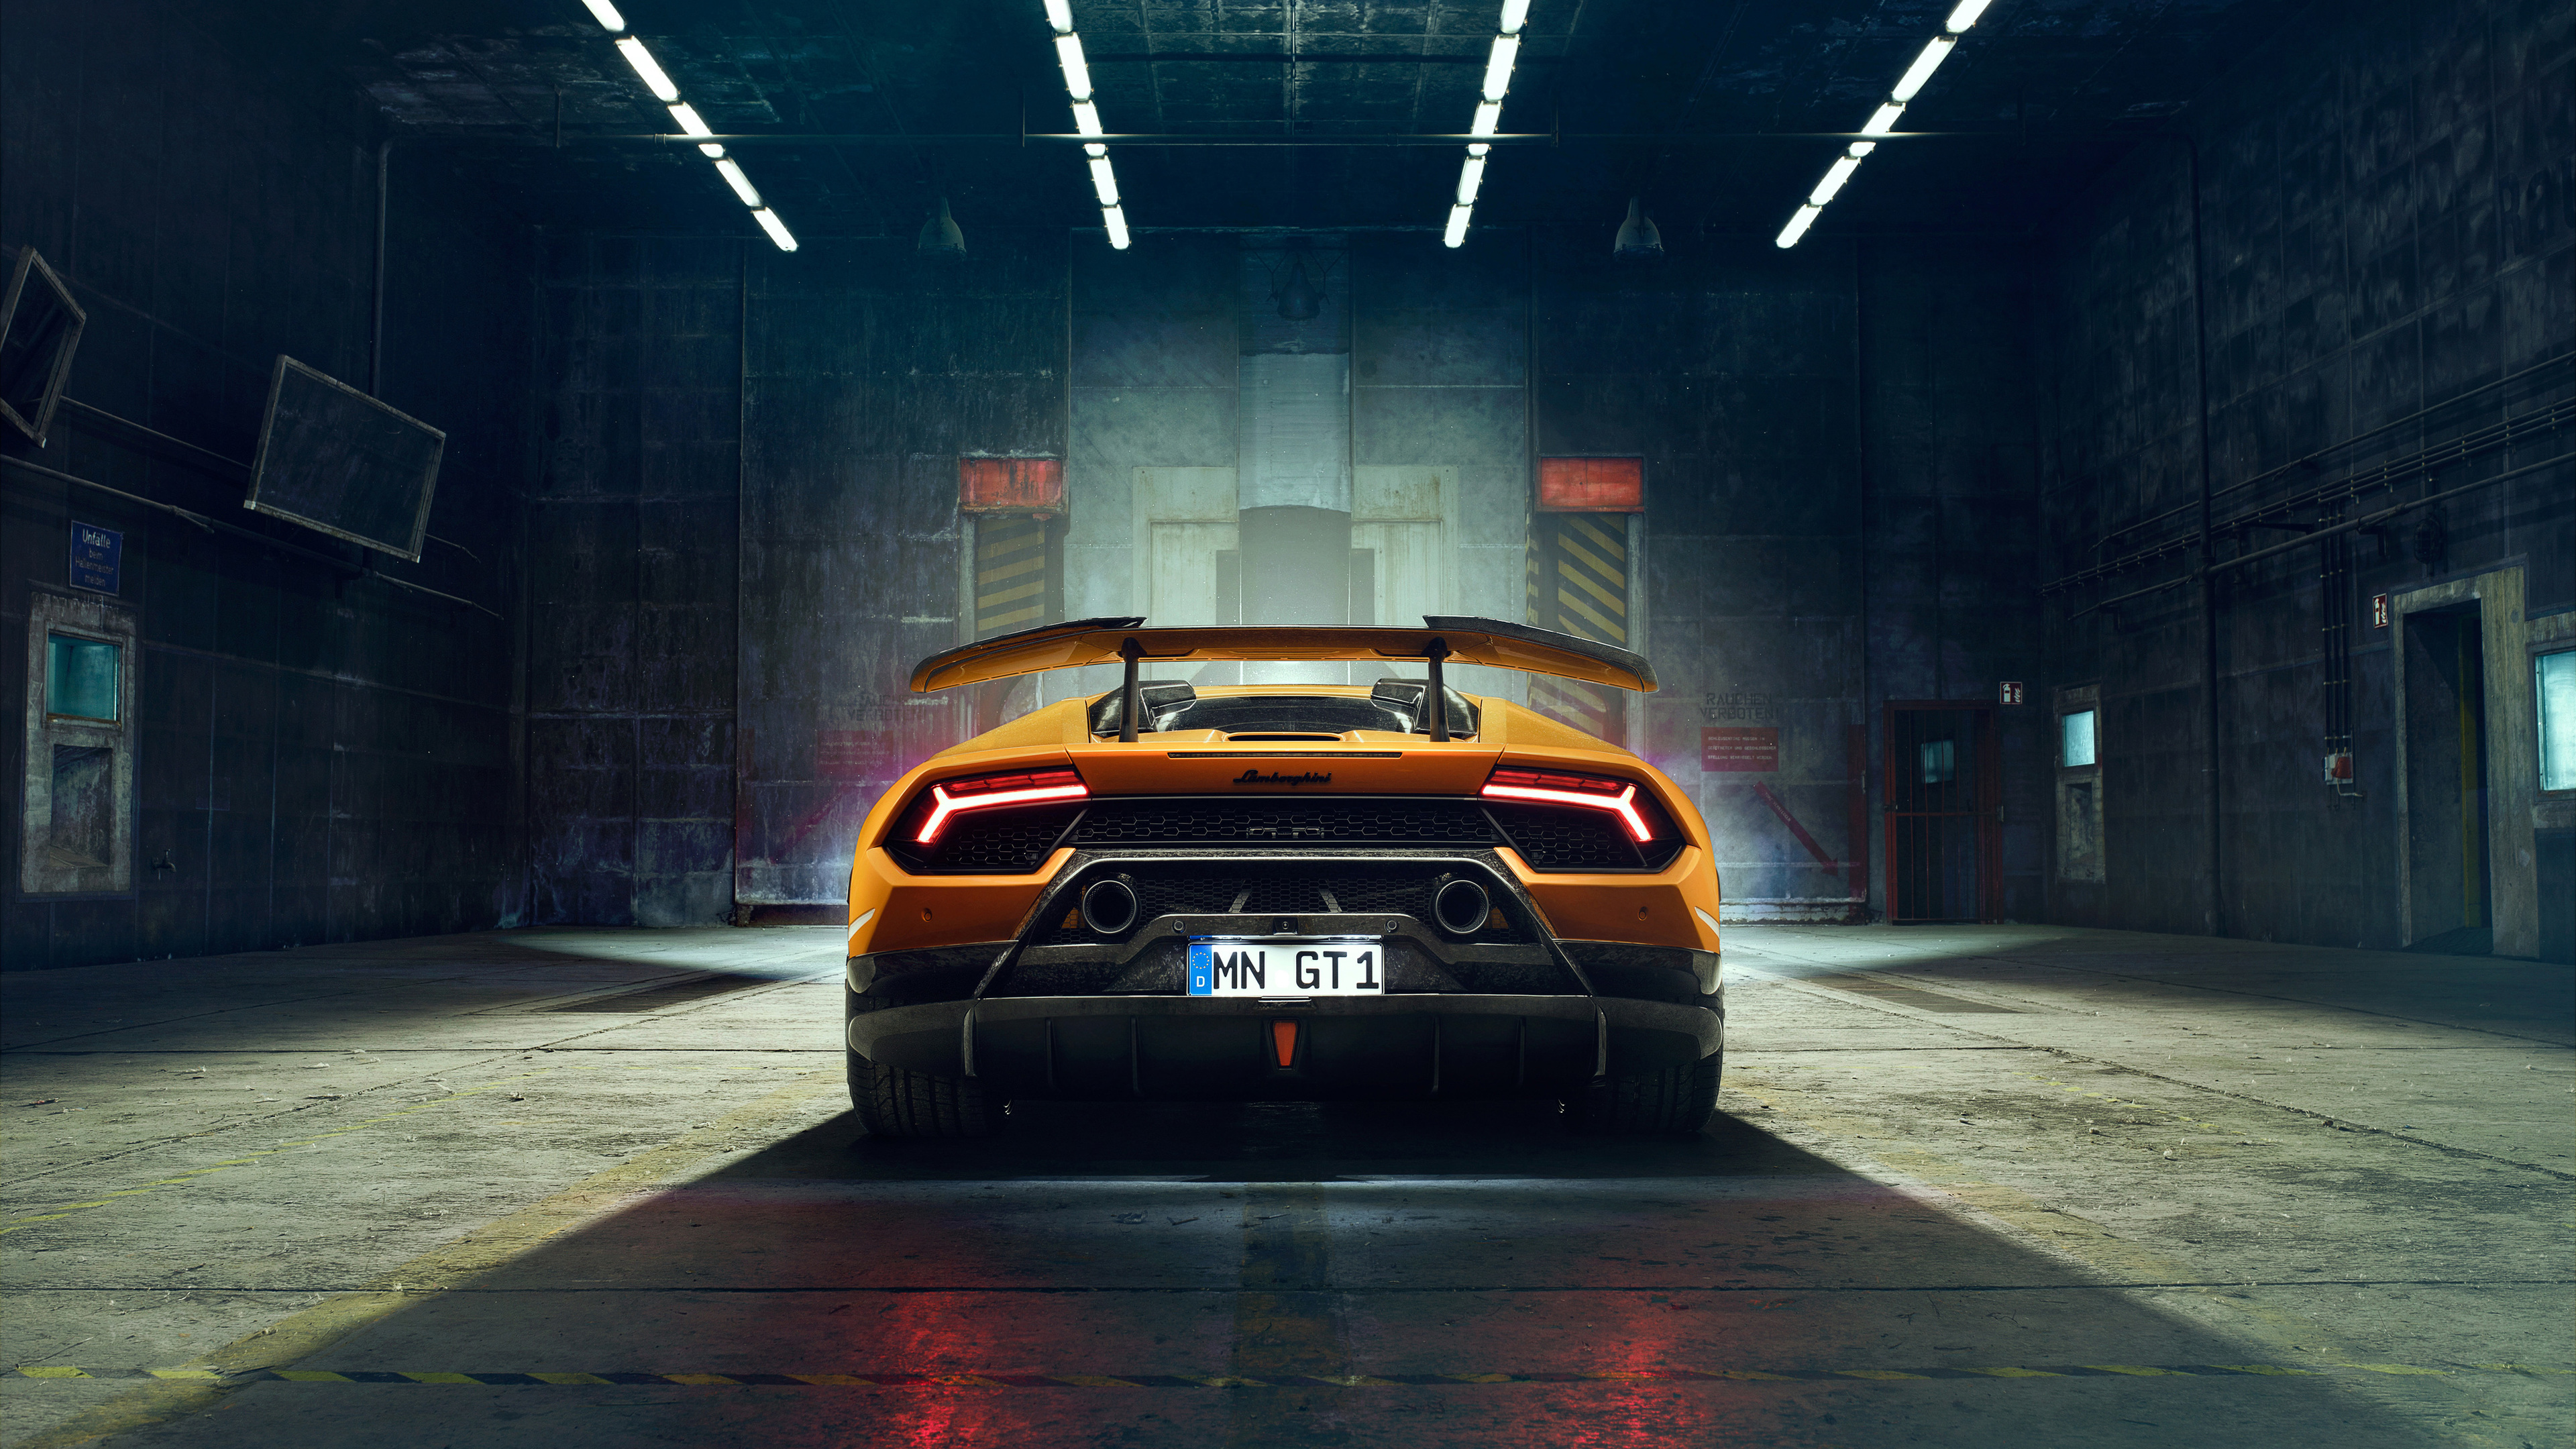 novitec lamborghi huracan perfomante 2018 rear lights 4k 1539111985 - Novitec Lamborghi Huracan Perfomante 2018 Rear Lights 4k - lamborghini wallpapers, lamborghini huracan wallpapers, lamborghini huracan performante wallpapers, hd-wallpapers, cars wallpapers, 4k-wallpapers, 2018 cars wallpapers